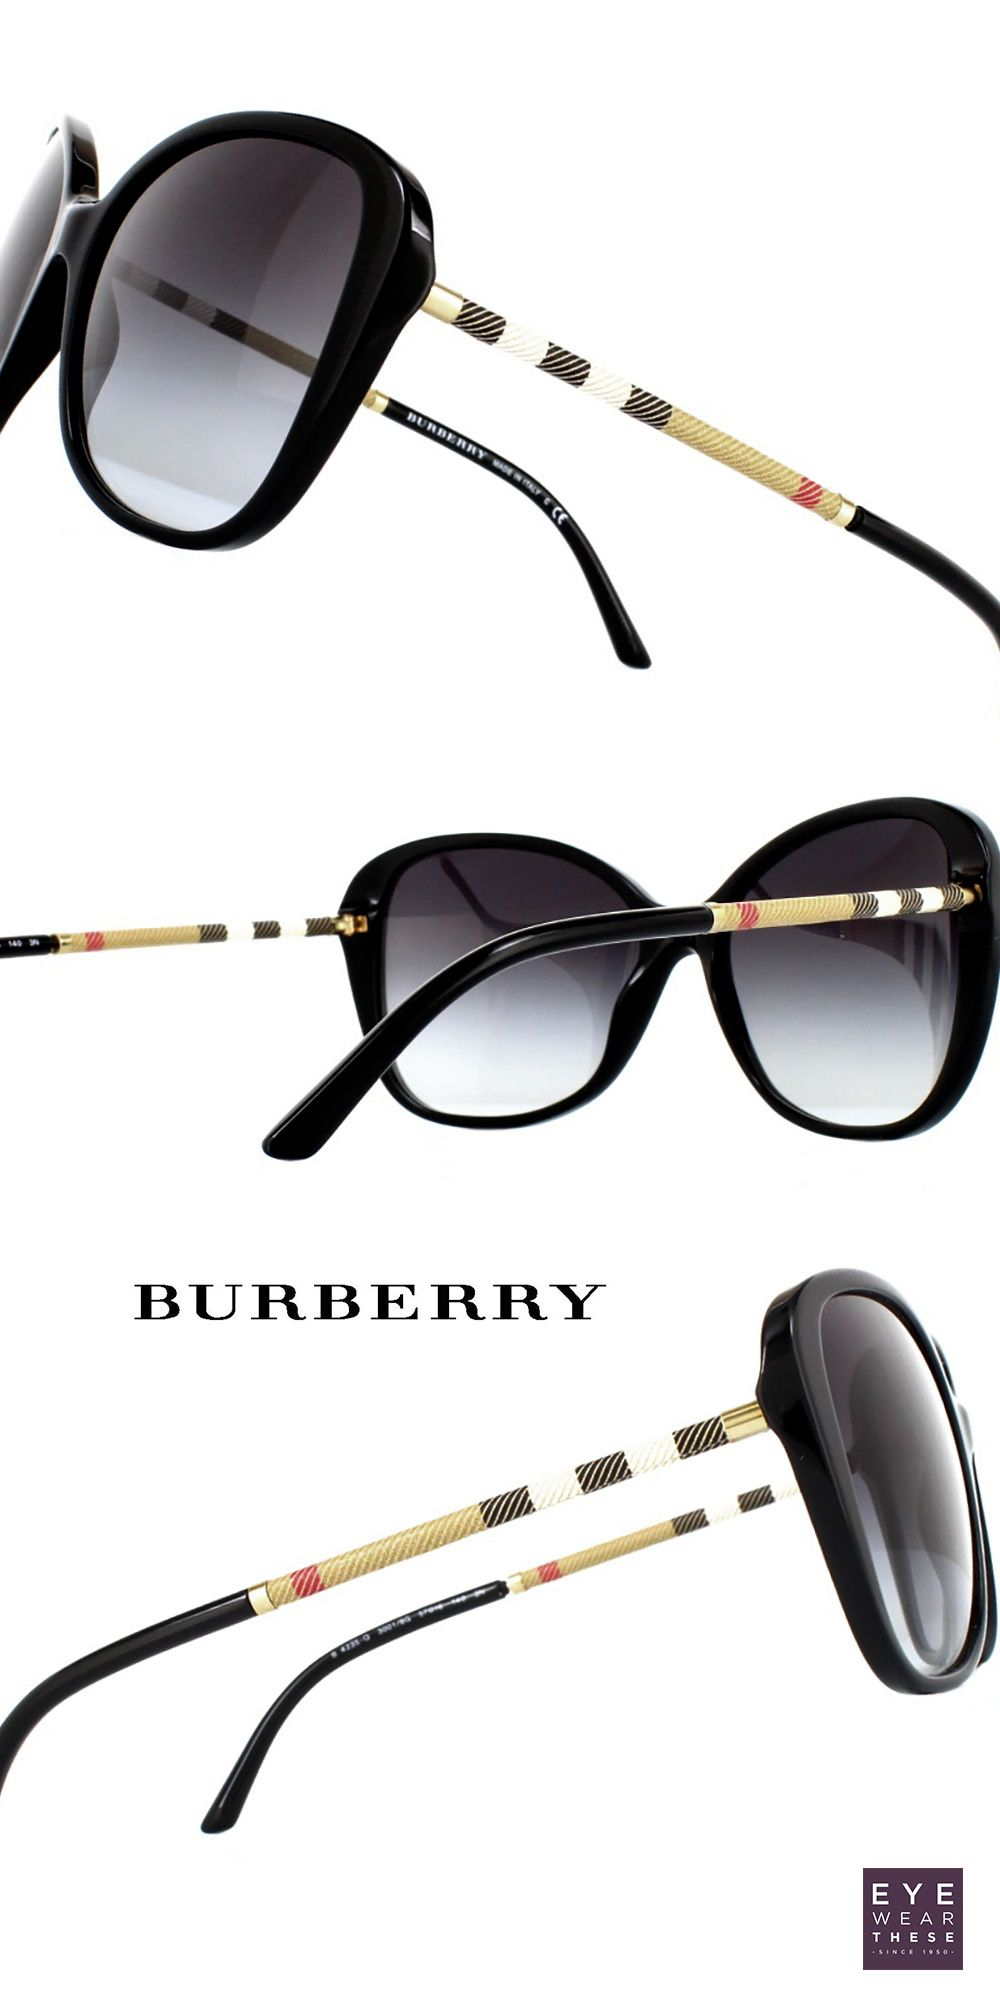 062805838dc2 Premium Burberry sunglasses for women with with beautifully wrapped leather  temples in the house check design  Burberry  fashion